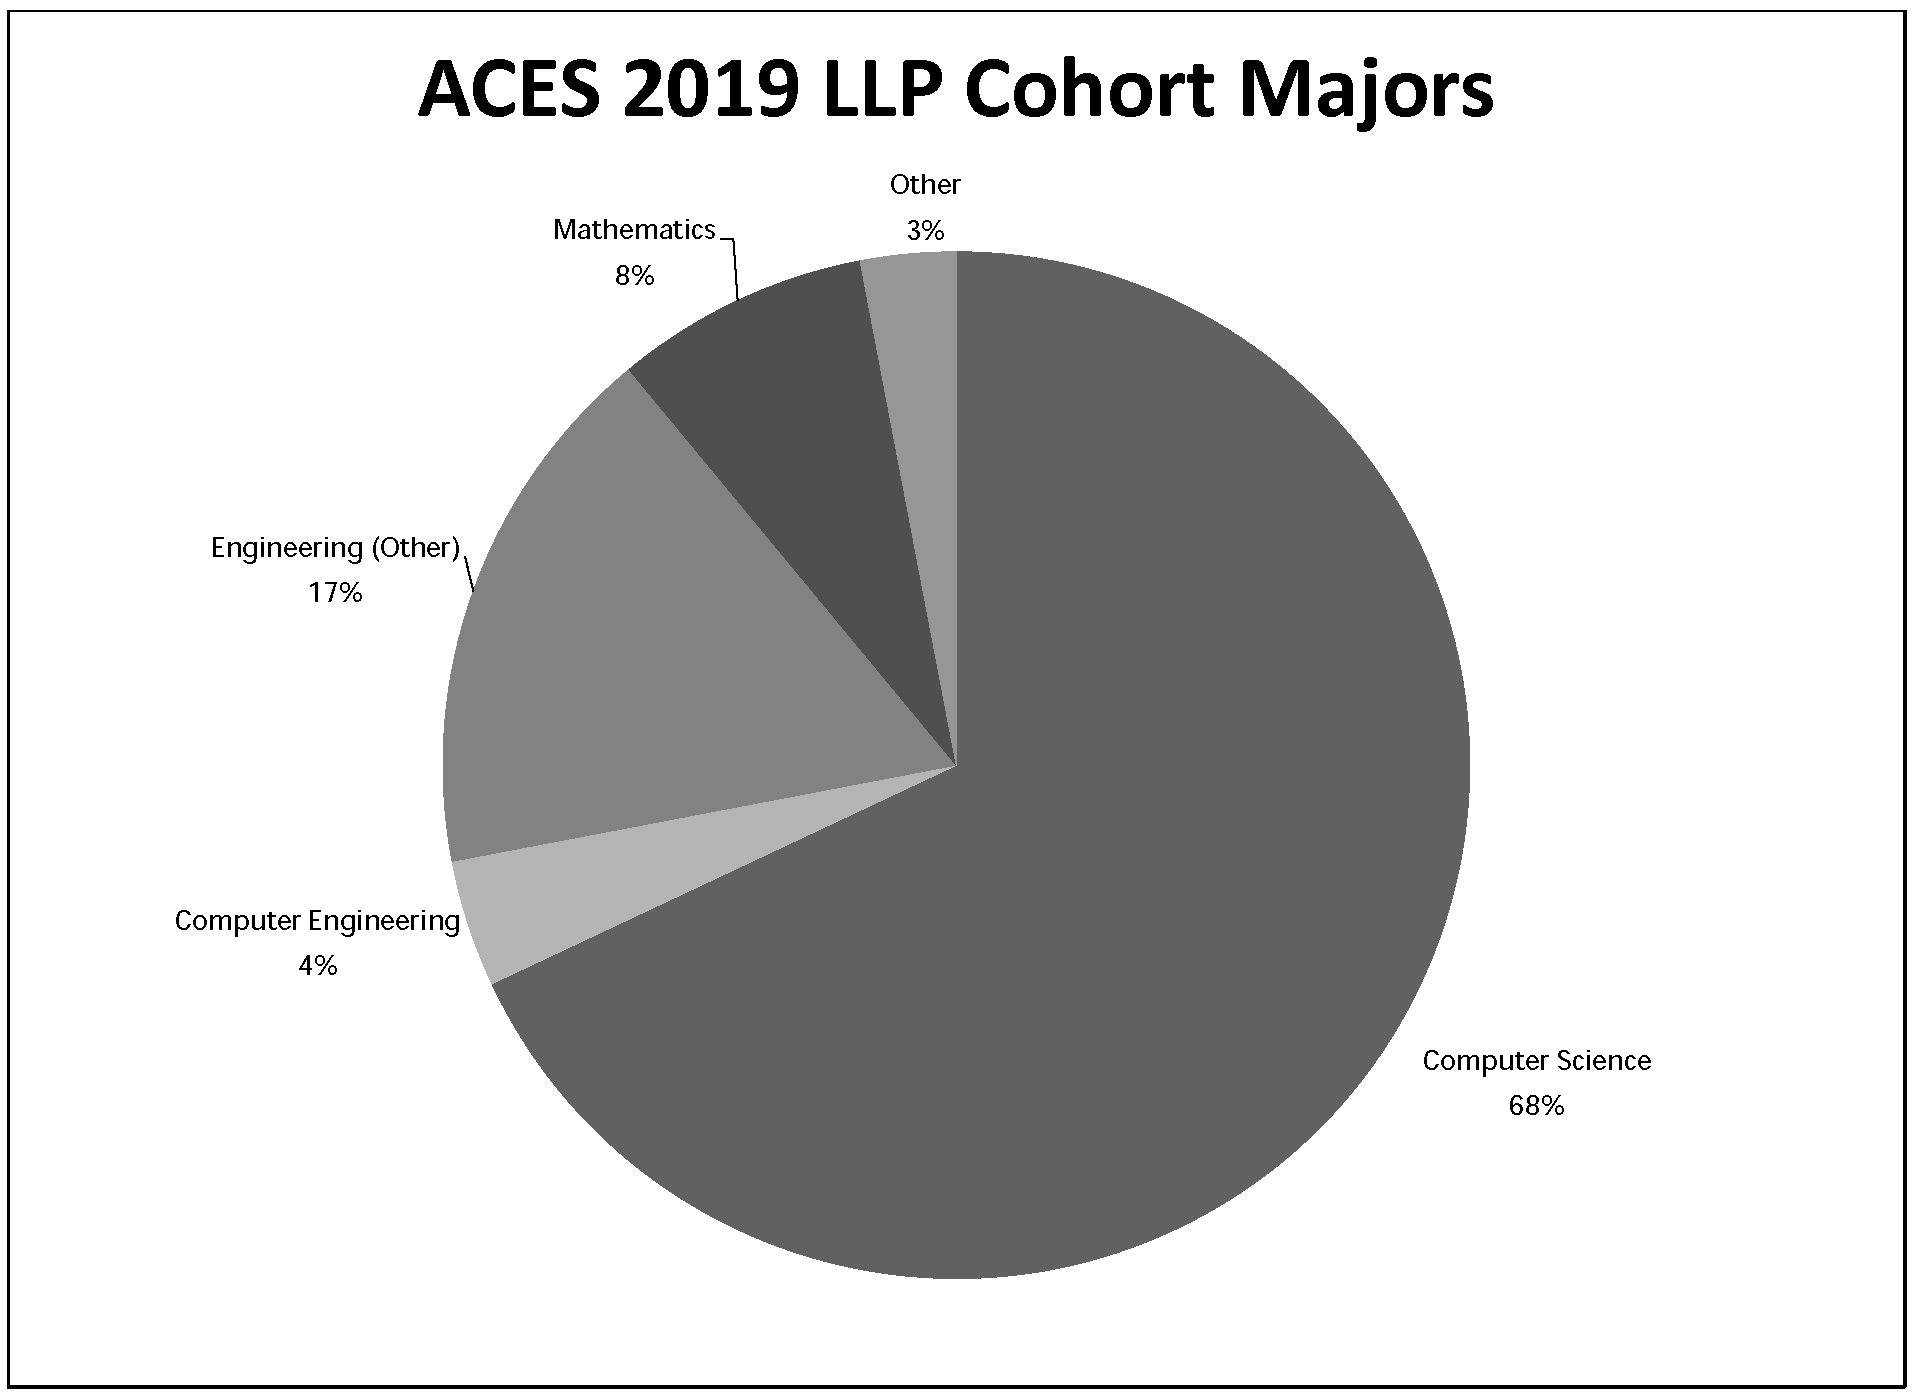 2019 LLP Cohort Majors by Percentage